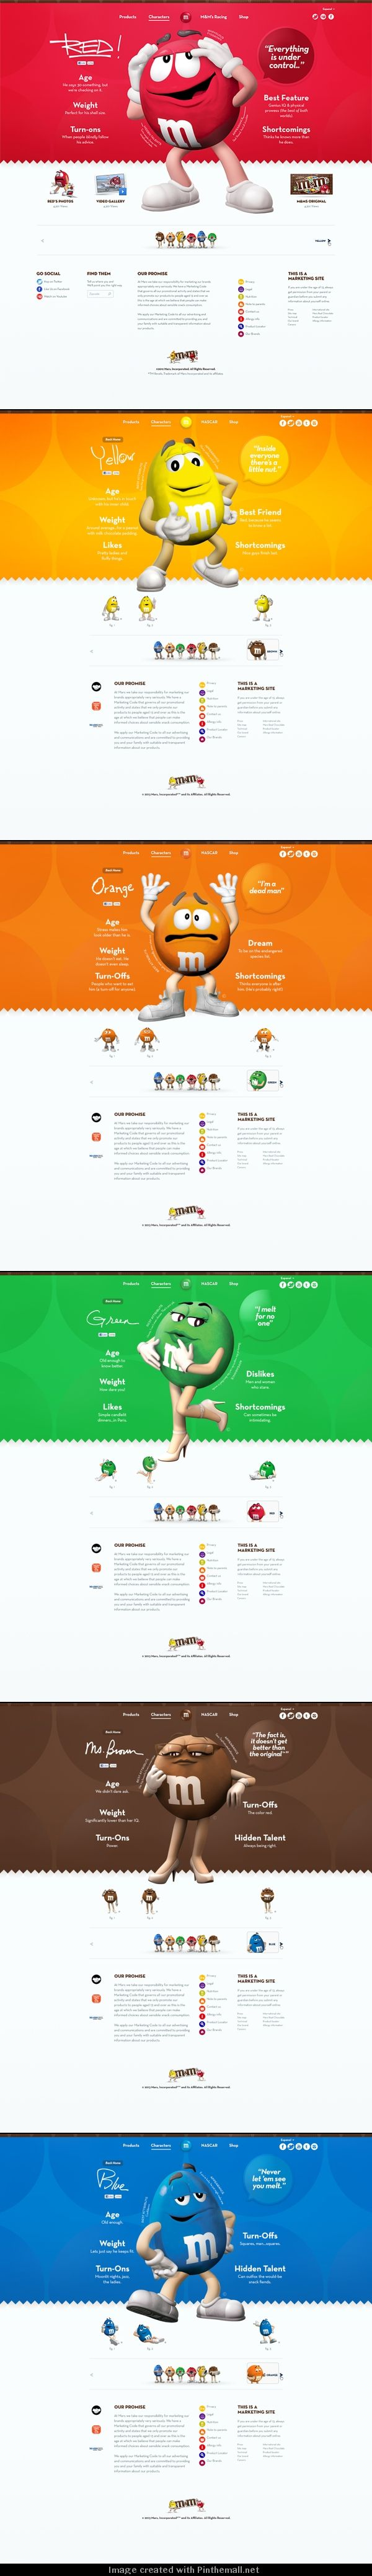 Cool Web Design on the Internet, M&M. #webdesign #webdevelopment #website @ http://www.pinterest.com/alfredchong/web-design/